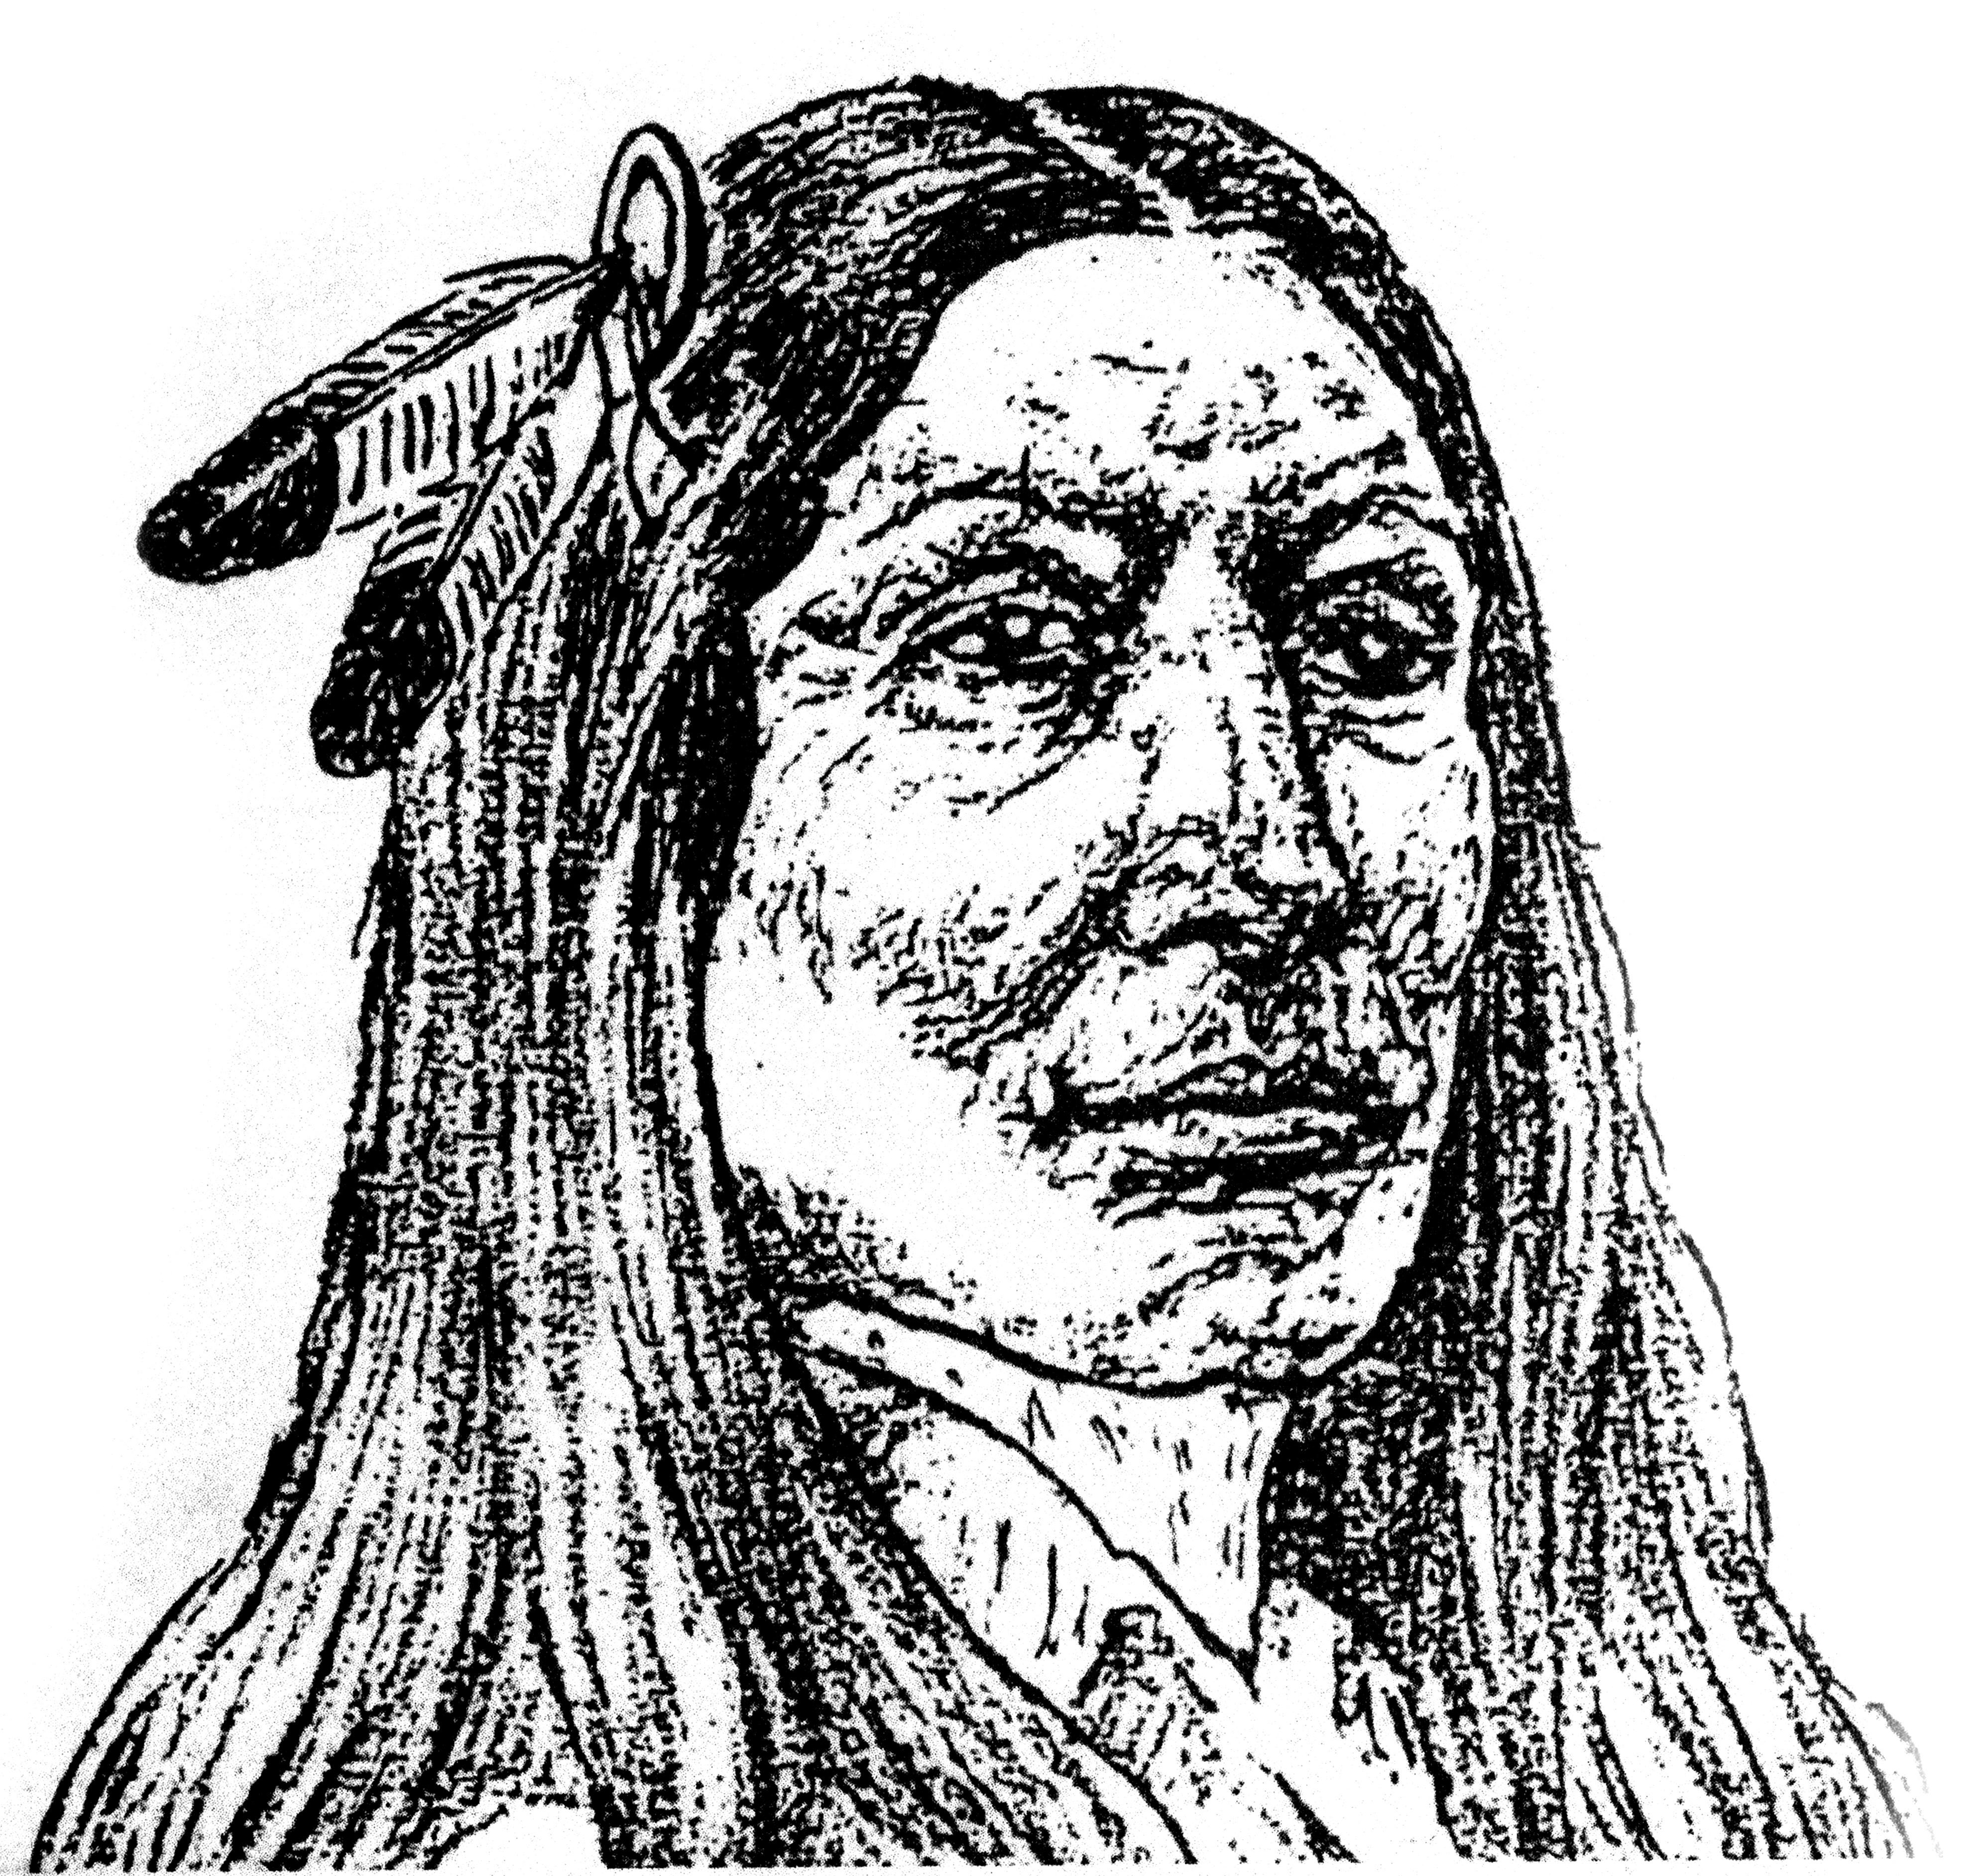 an analysis of the crazy horse story from 19th century Crazy horse, born curly hair, was born in the early 1840's from father, crazy horse, and mother, rattle blanket woman the beginning of the book illustrates the progression of curly hair from childhood, through maturity, into warrior.